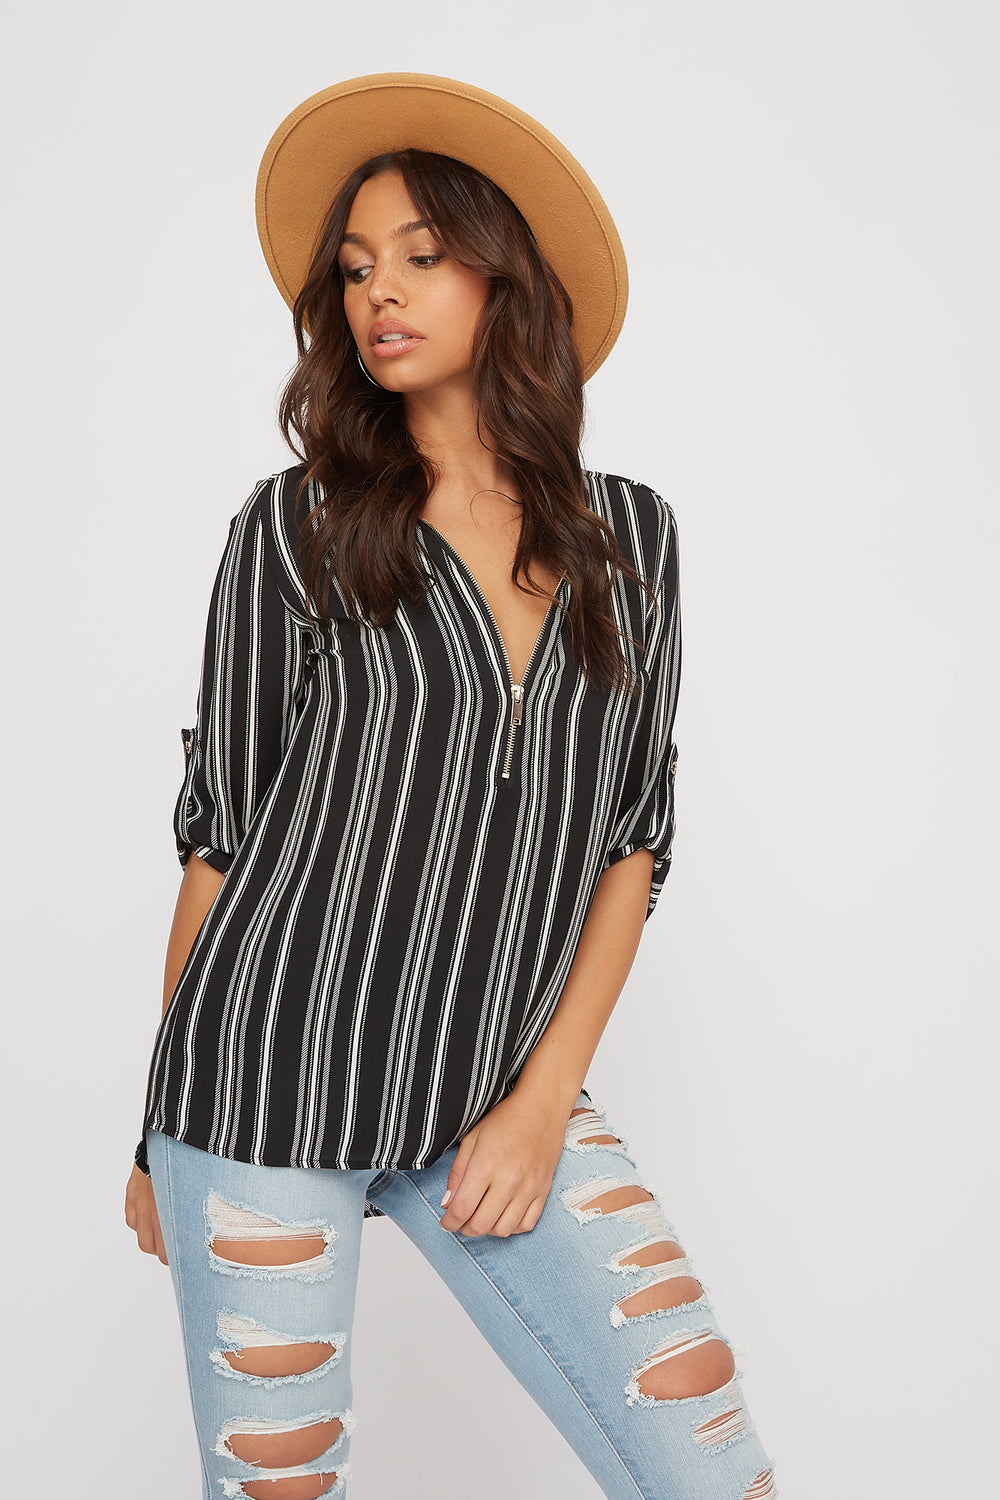 Half-Zip Roll-Tab Blouse Black with White